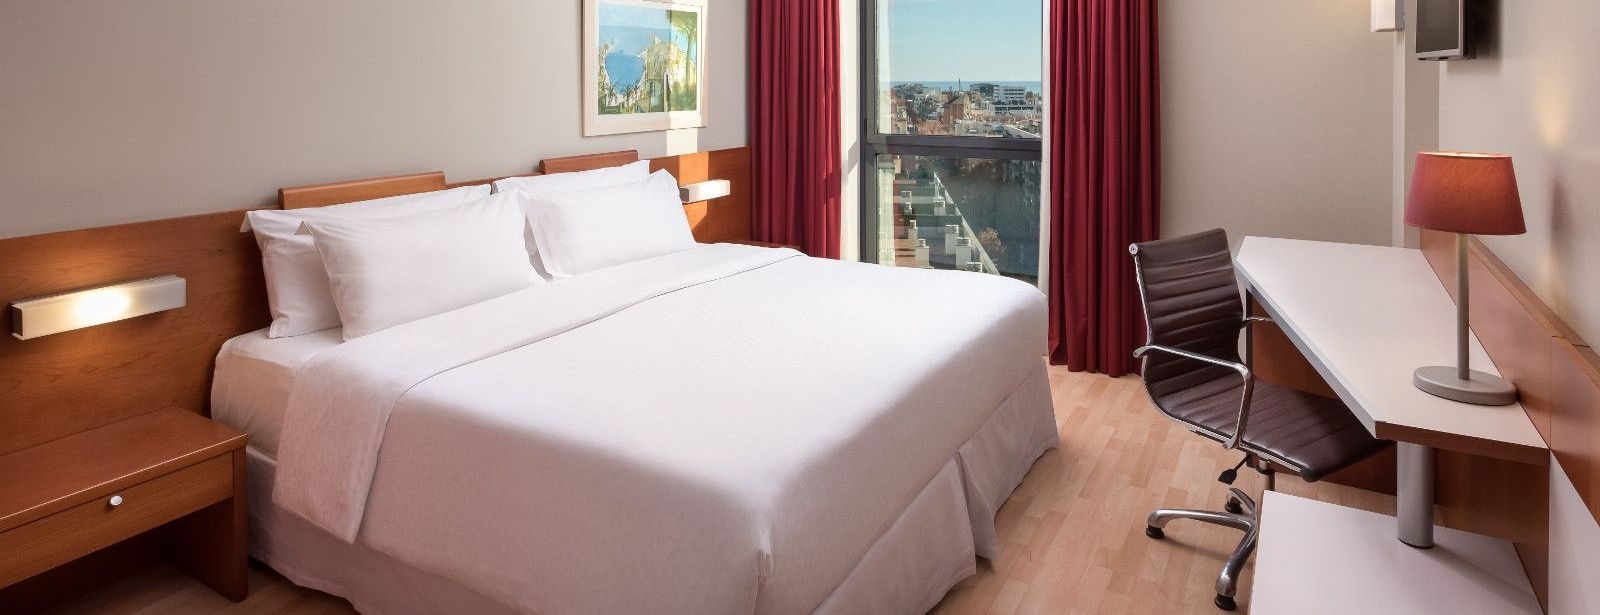 Habitación Preferred | Four Points by Sheraton Barcelona Diagonal